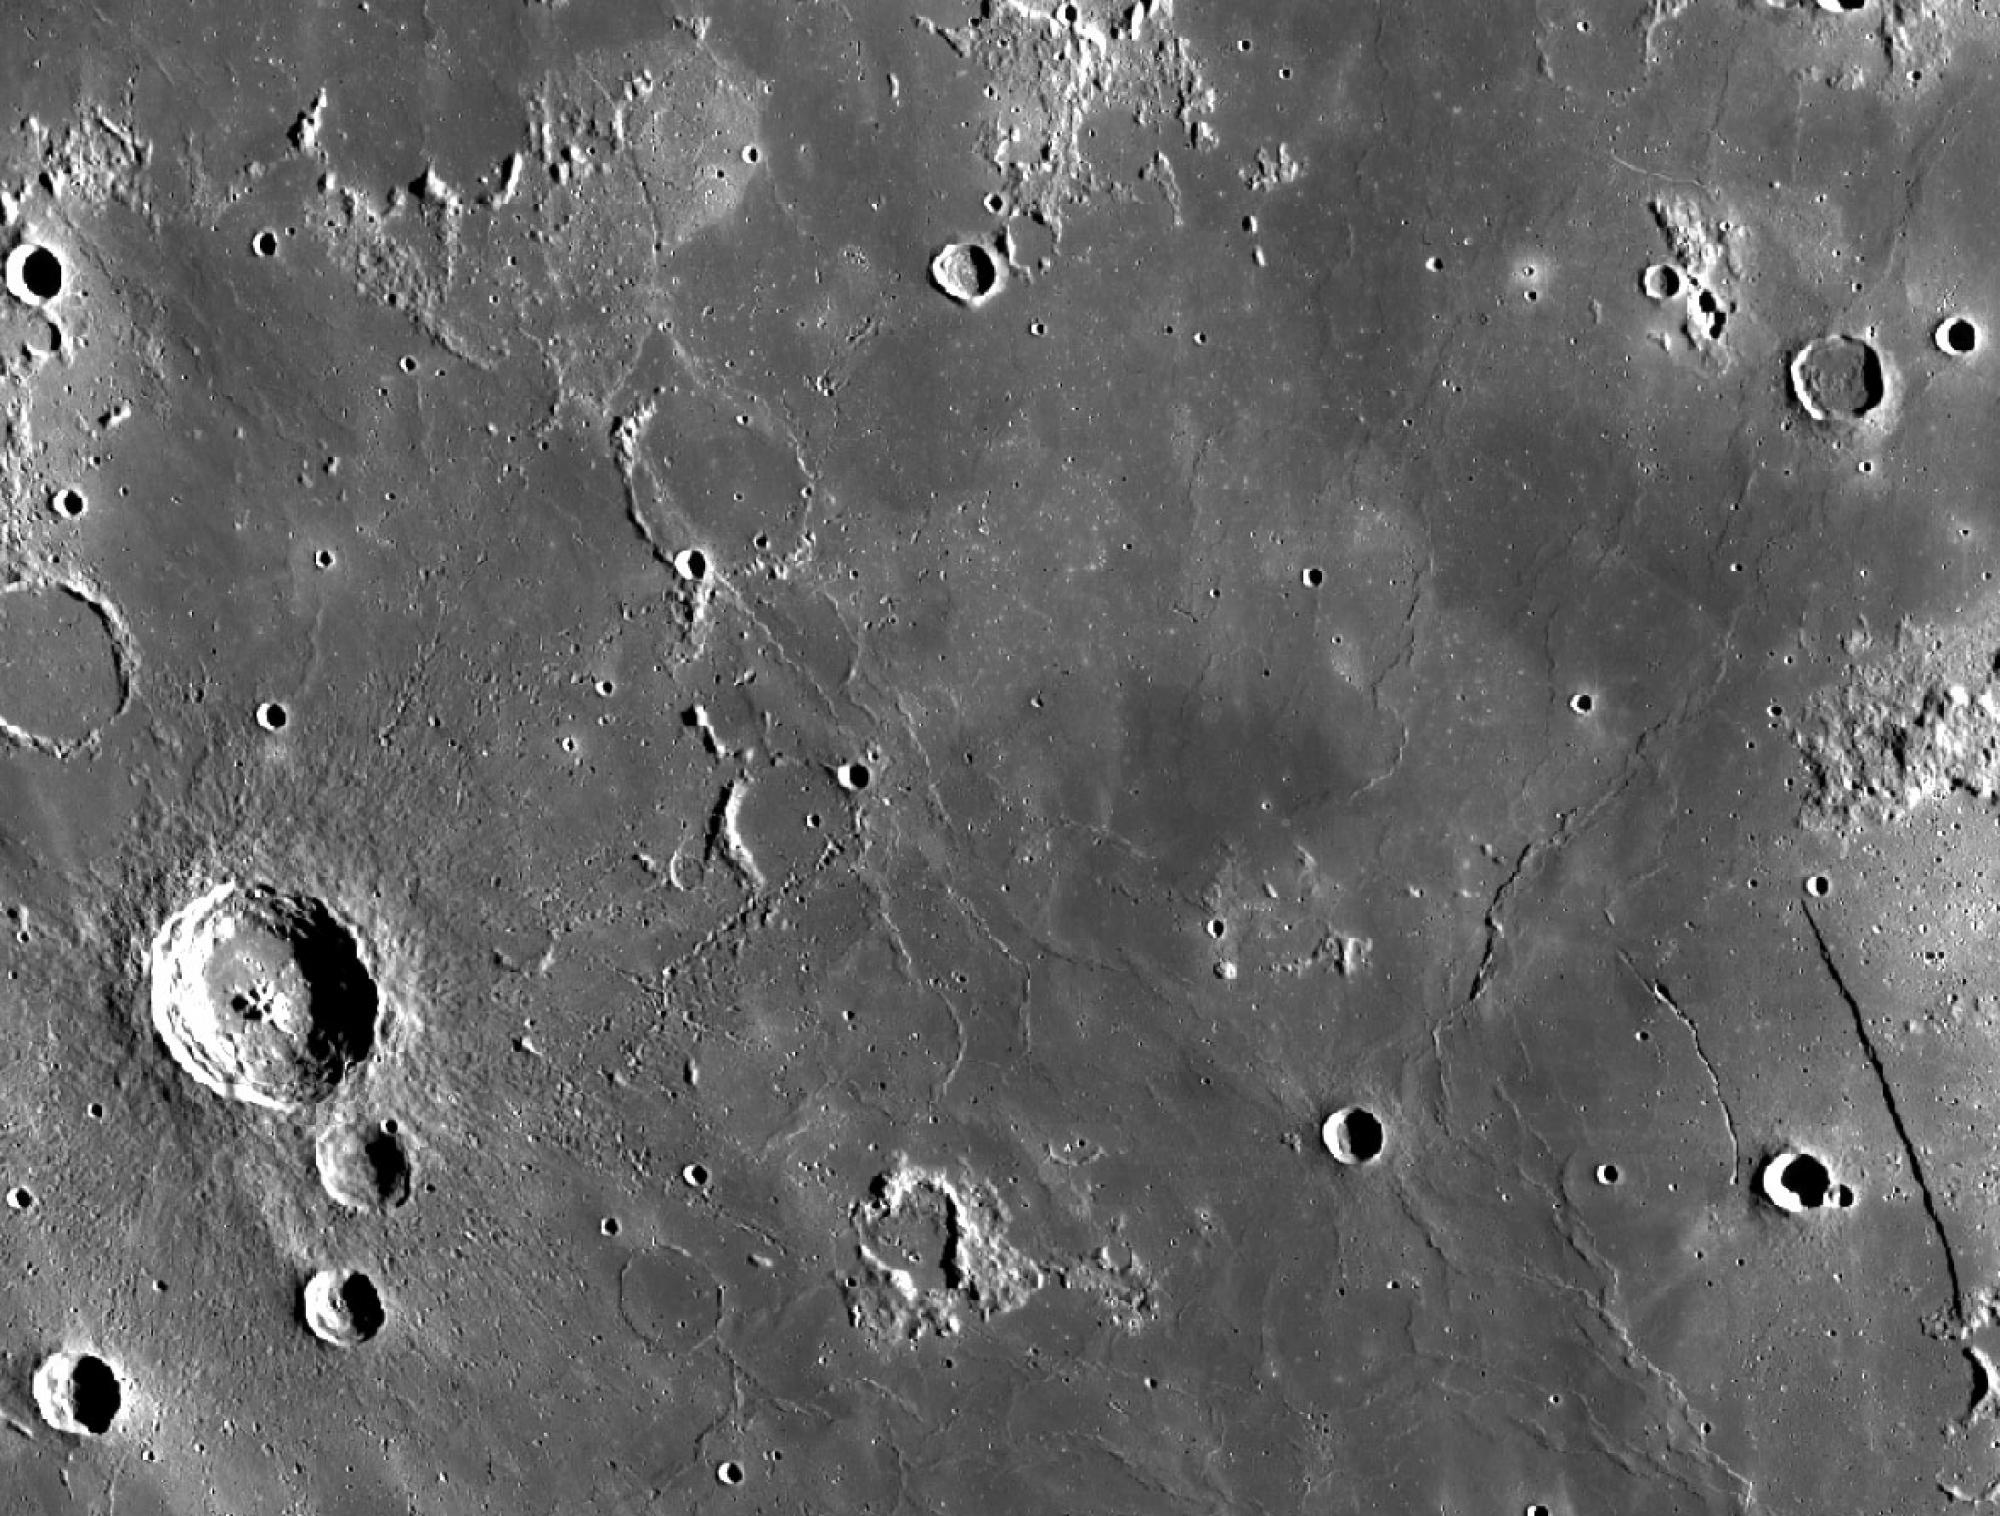 NASA's Lunar Reconnaissance Orbiter took this wide-angle photograph of Mare Nubium, a seemingly featureless expanse on the moon. The crater on the left is Bullialdus, which spans about 38 miles in diameter.